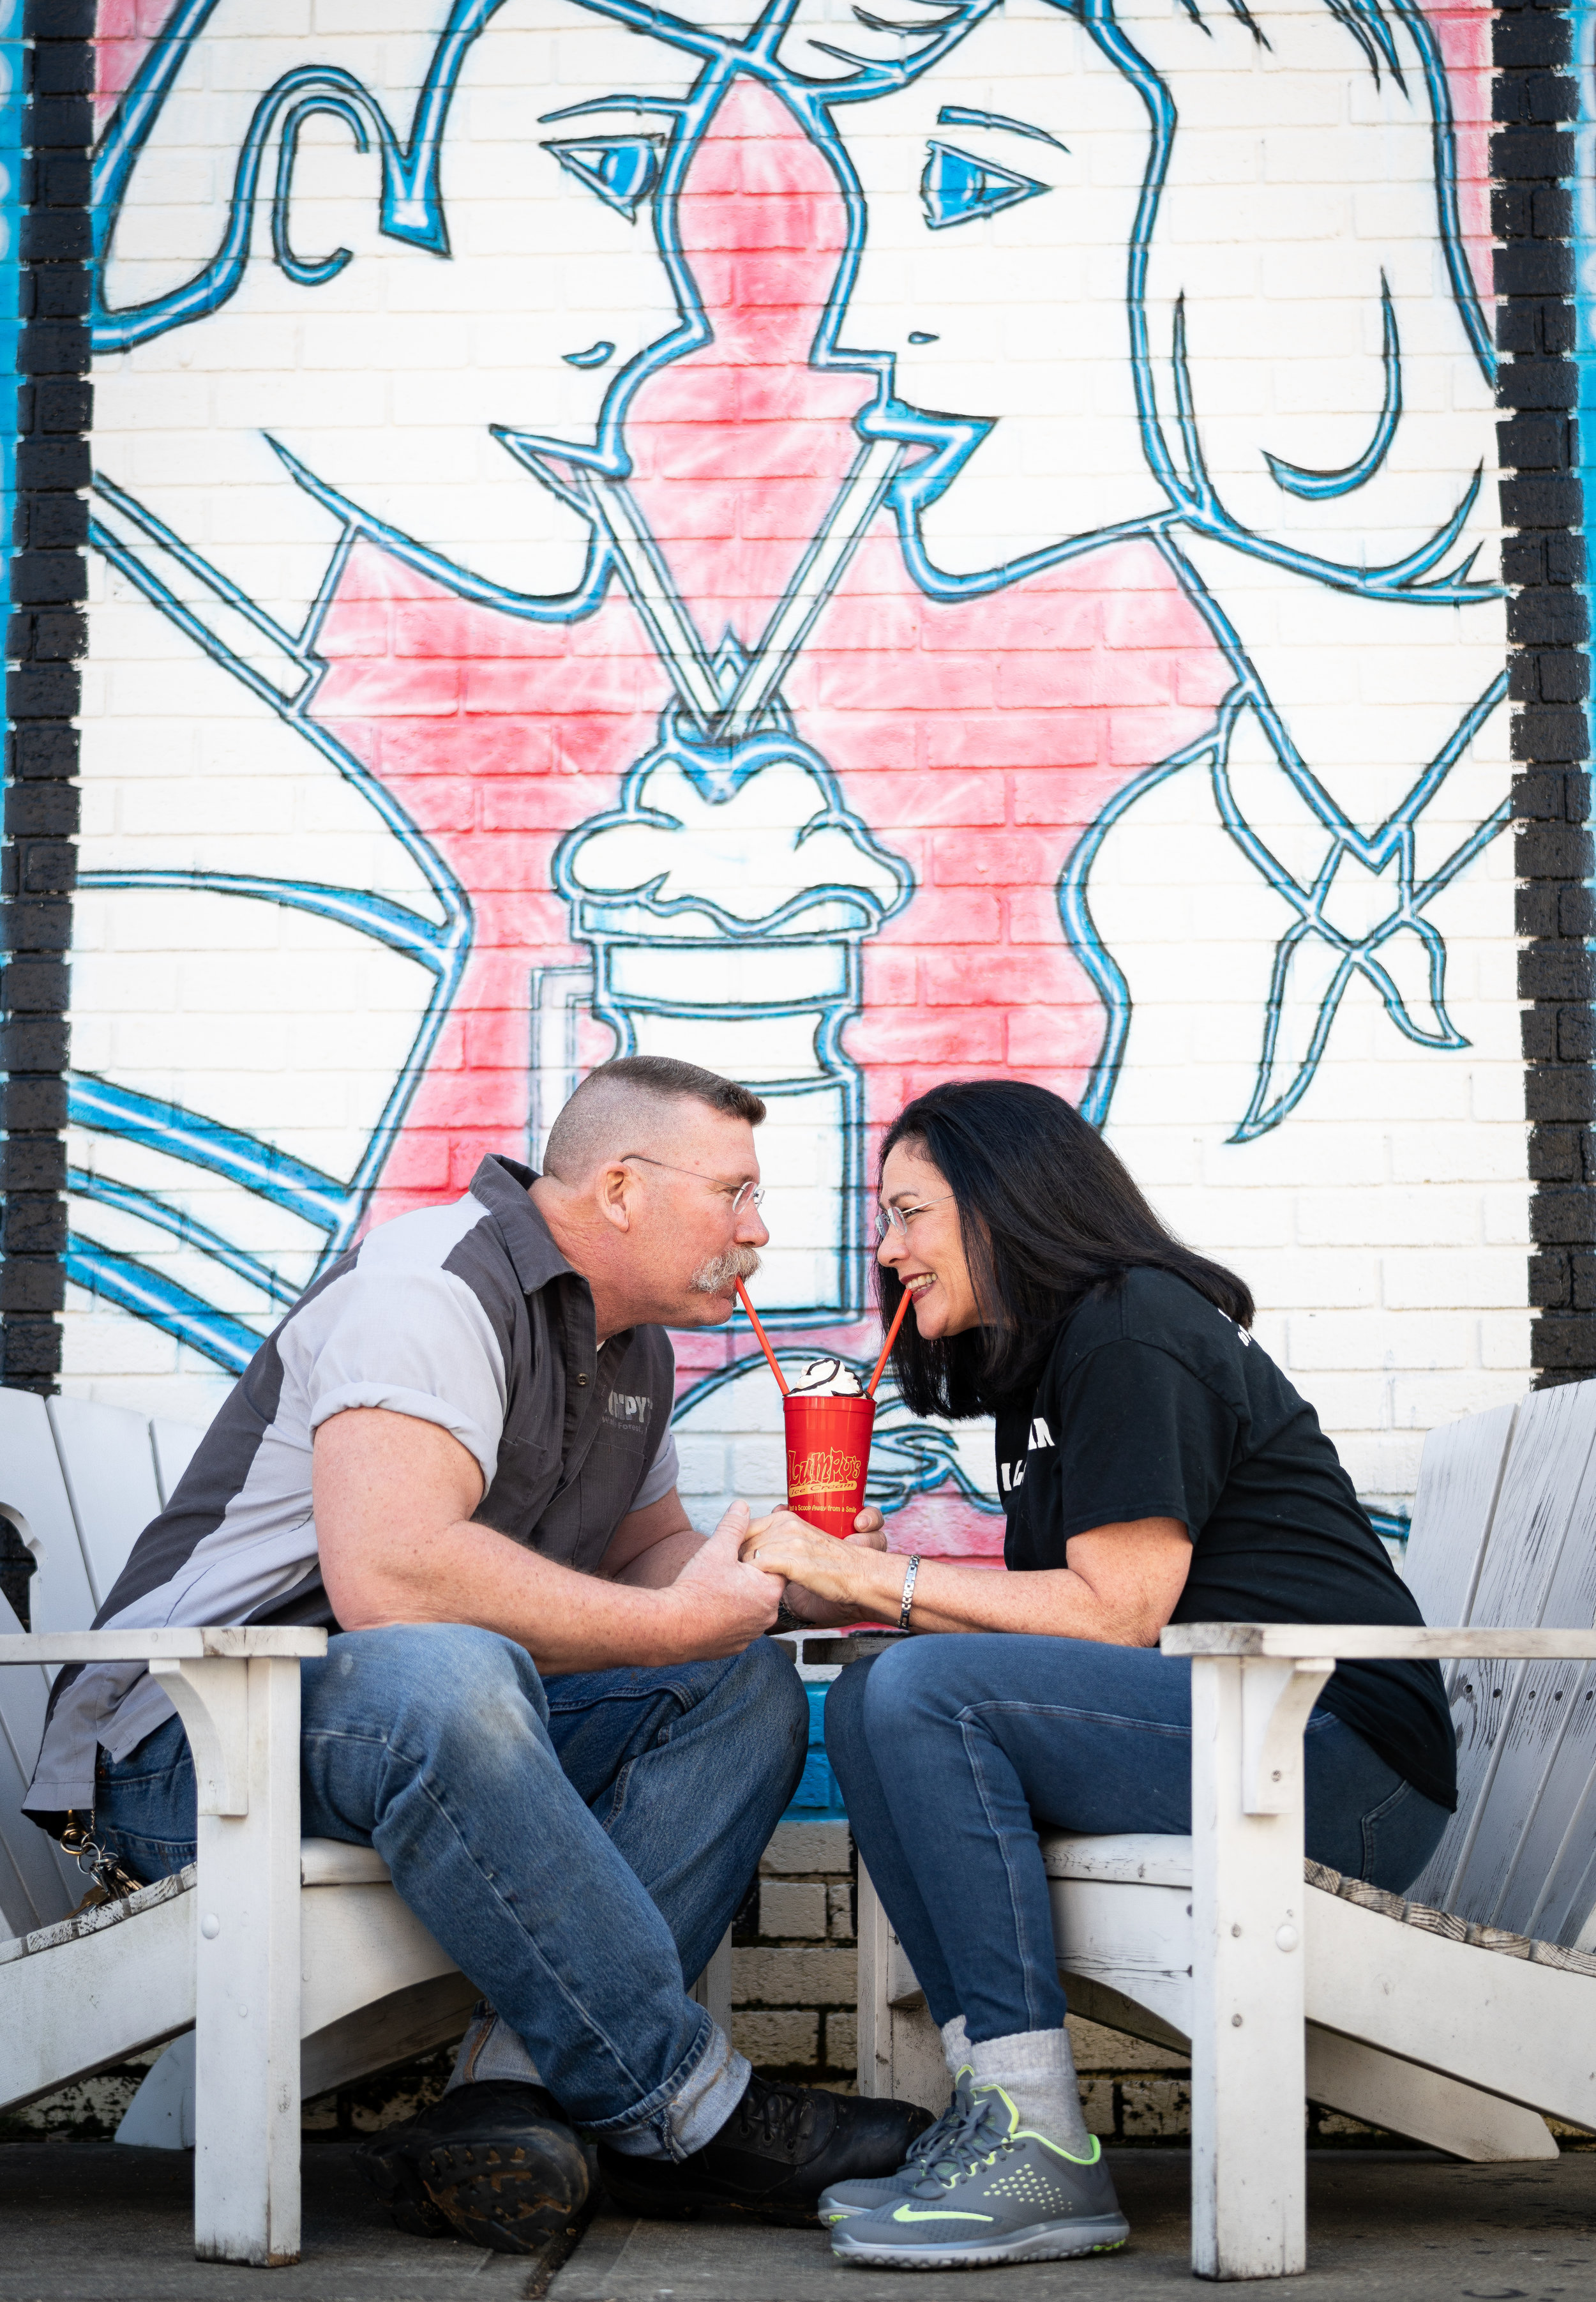 at lumpy's, romance blossoms over shared shakes. Photo by mash photography